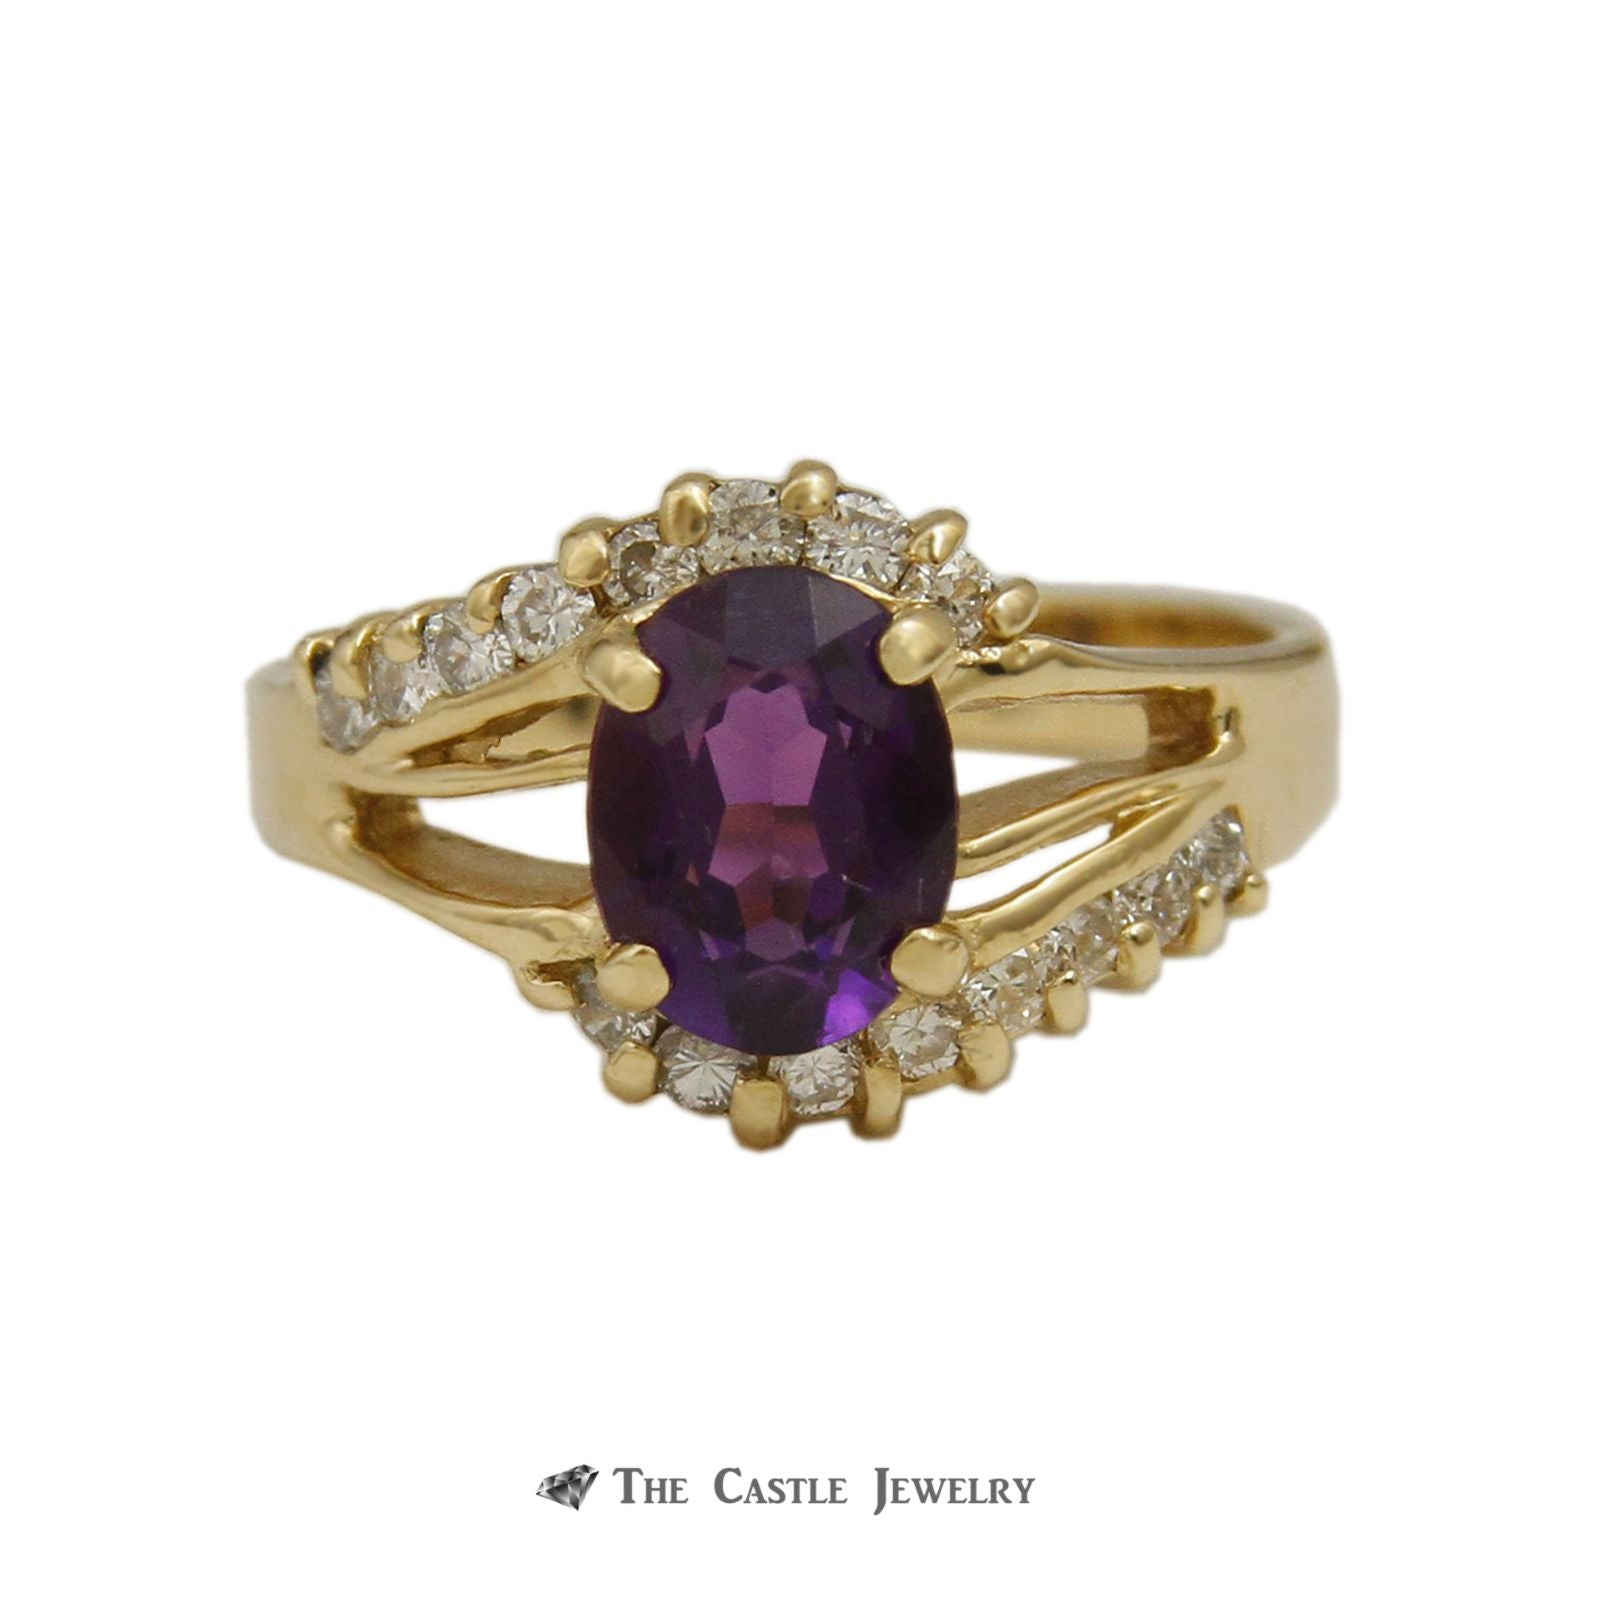 Oval Cut Amethyst Ring with .33cttw Round Diamonds in Open Swirl Design Mounting